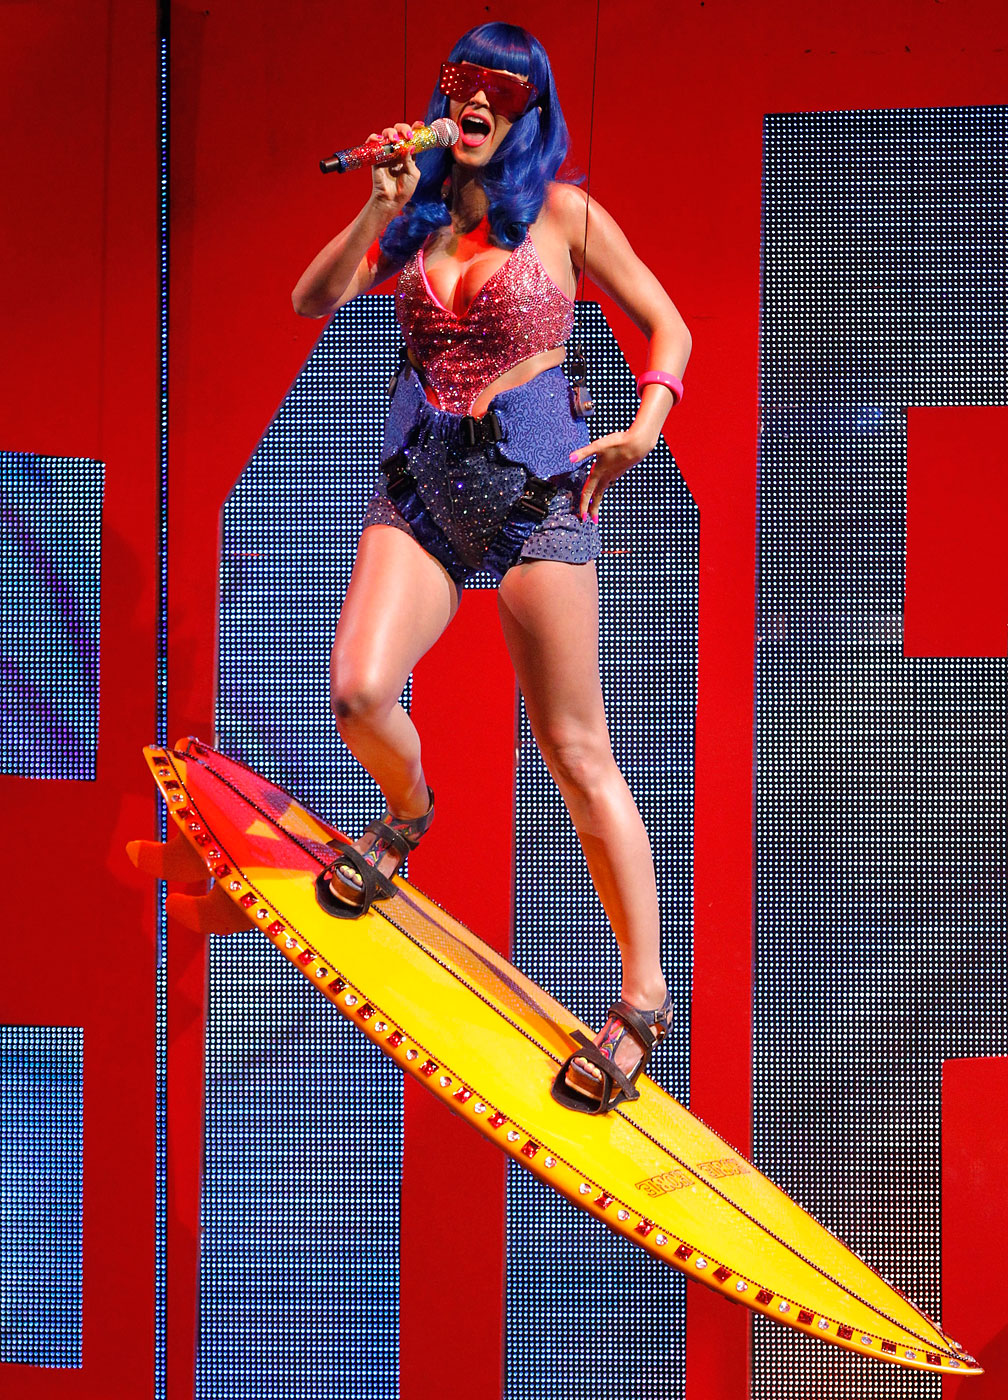 Katy Perry performs 'California Gurls' at the 2010 MTV Movie Awards in Los Angeles, June 6, 2010.